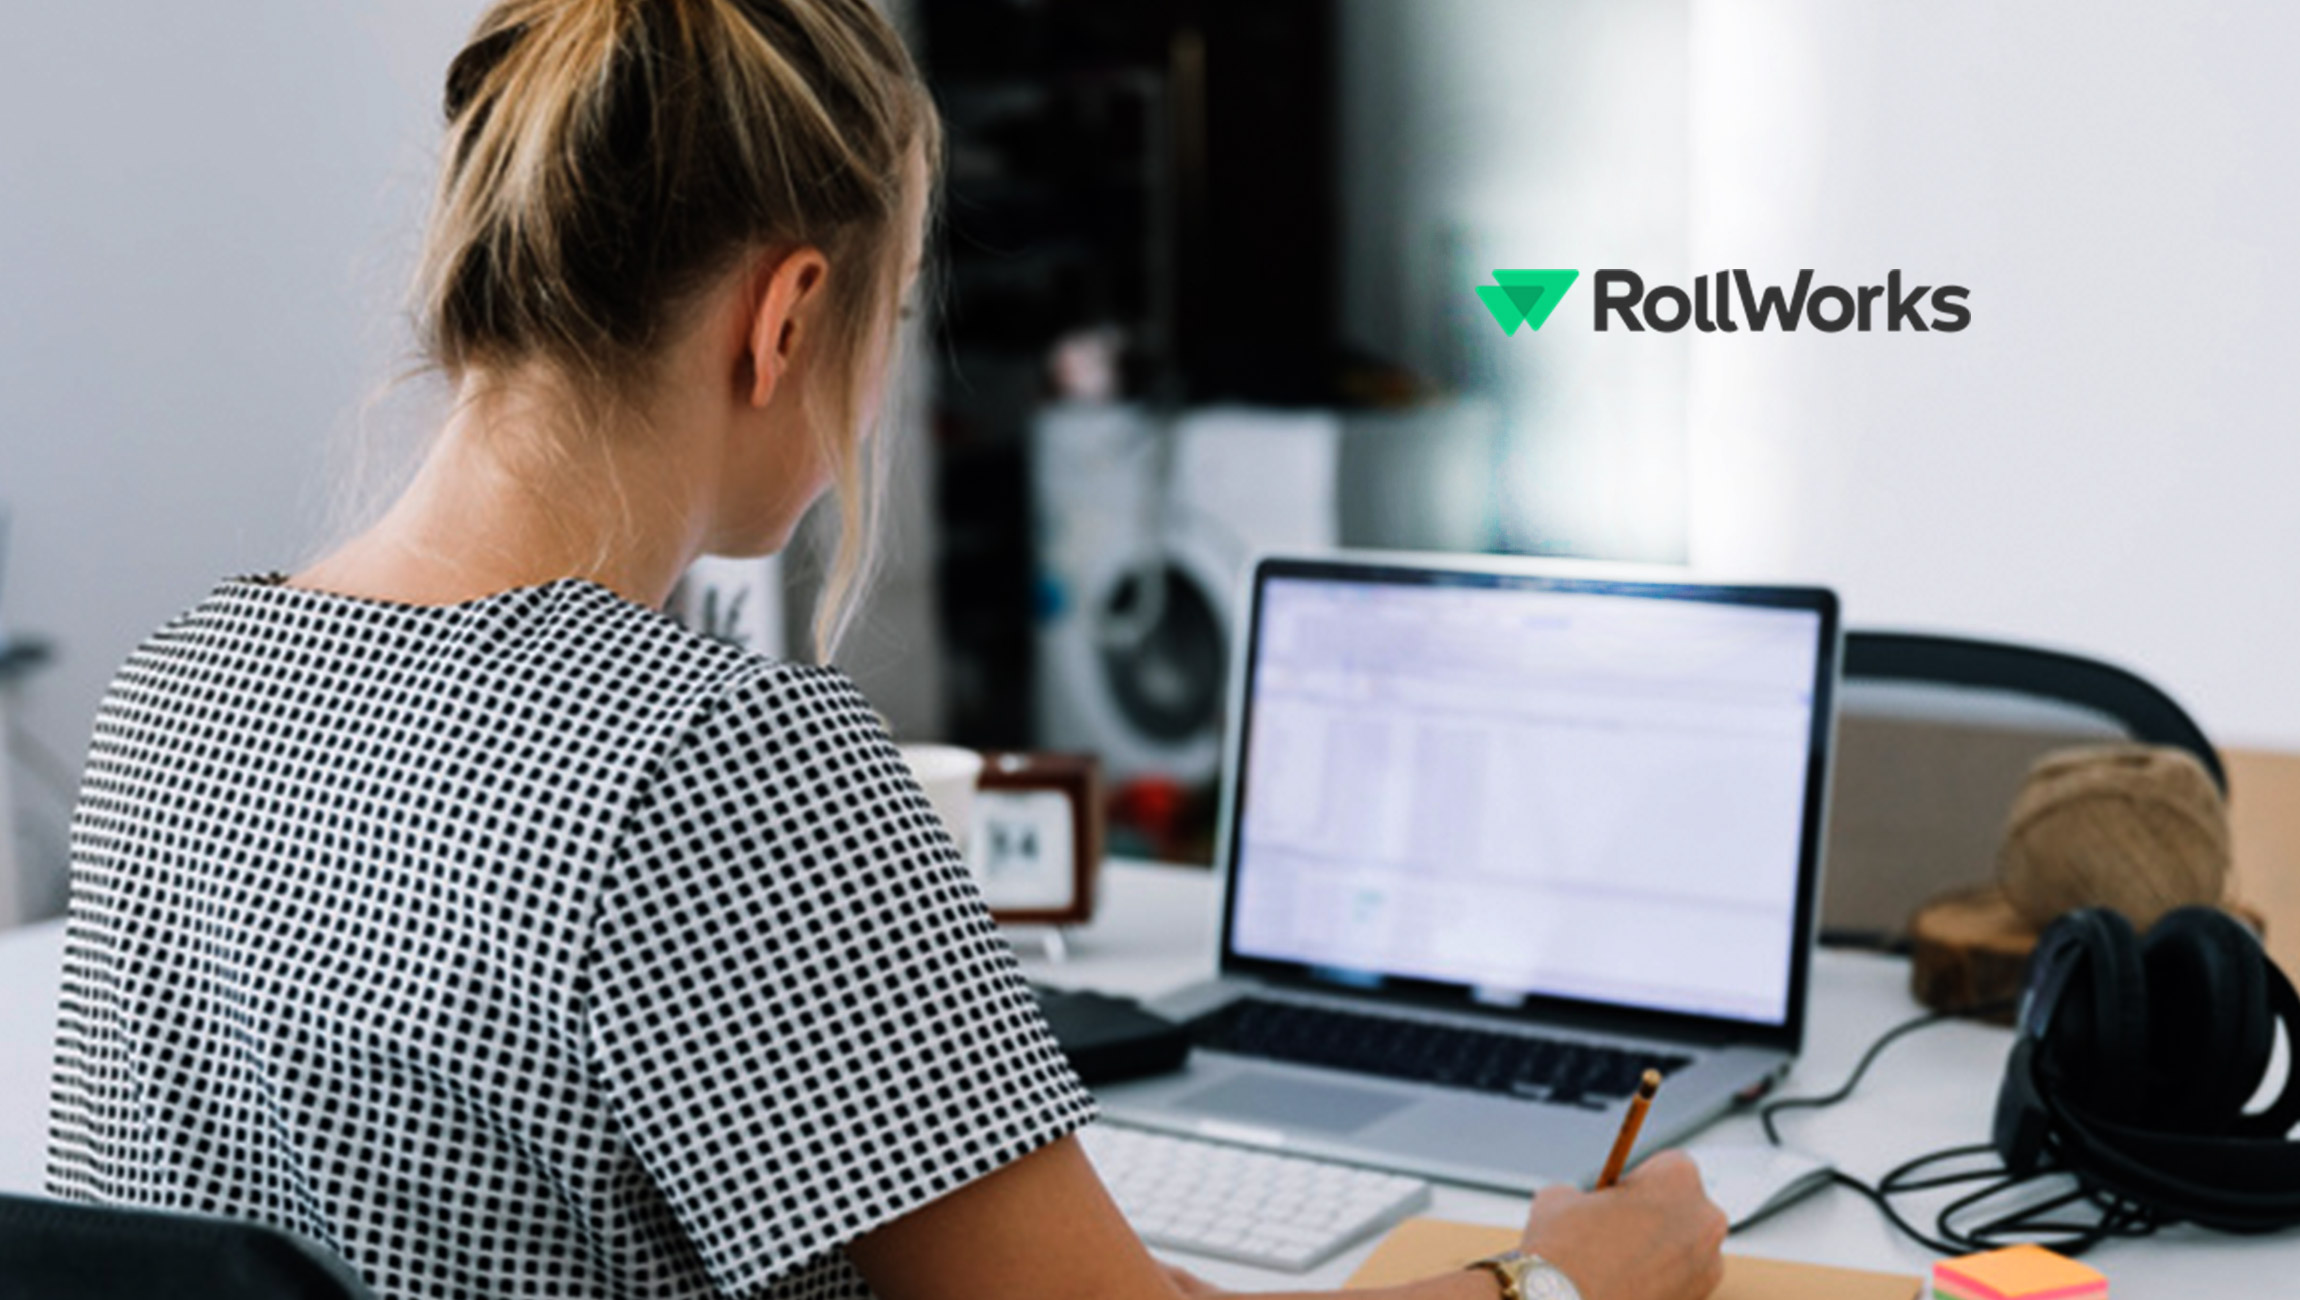 RollWorks Boosts Personalization Capabilities through New Partnerships with Uberflip, Reactful, and Hushly